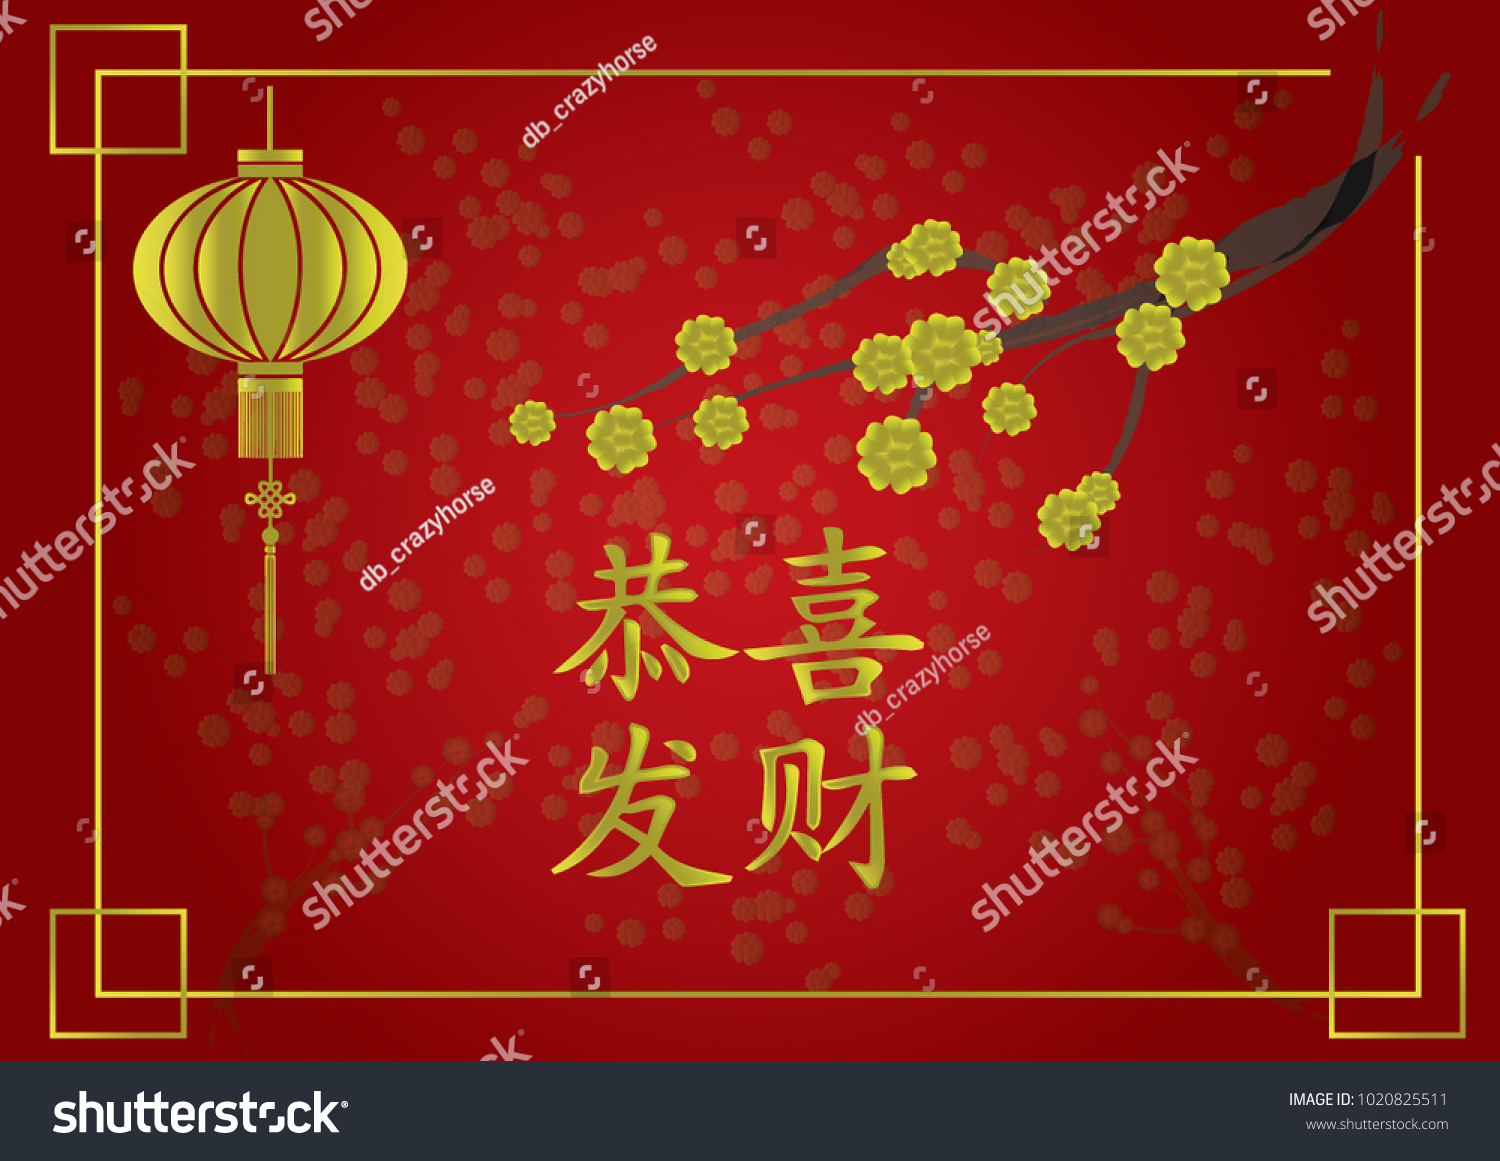 Graphic Design Greetings Card China Lunar Stock Vector 1020825511